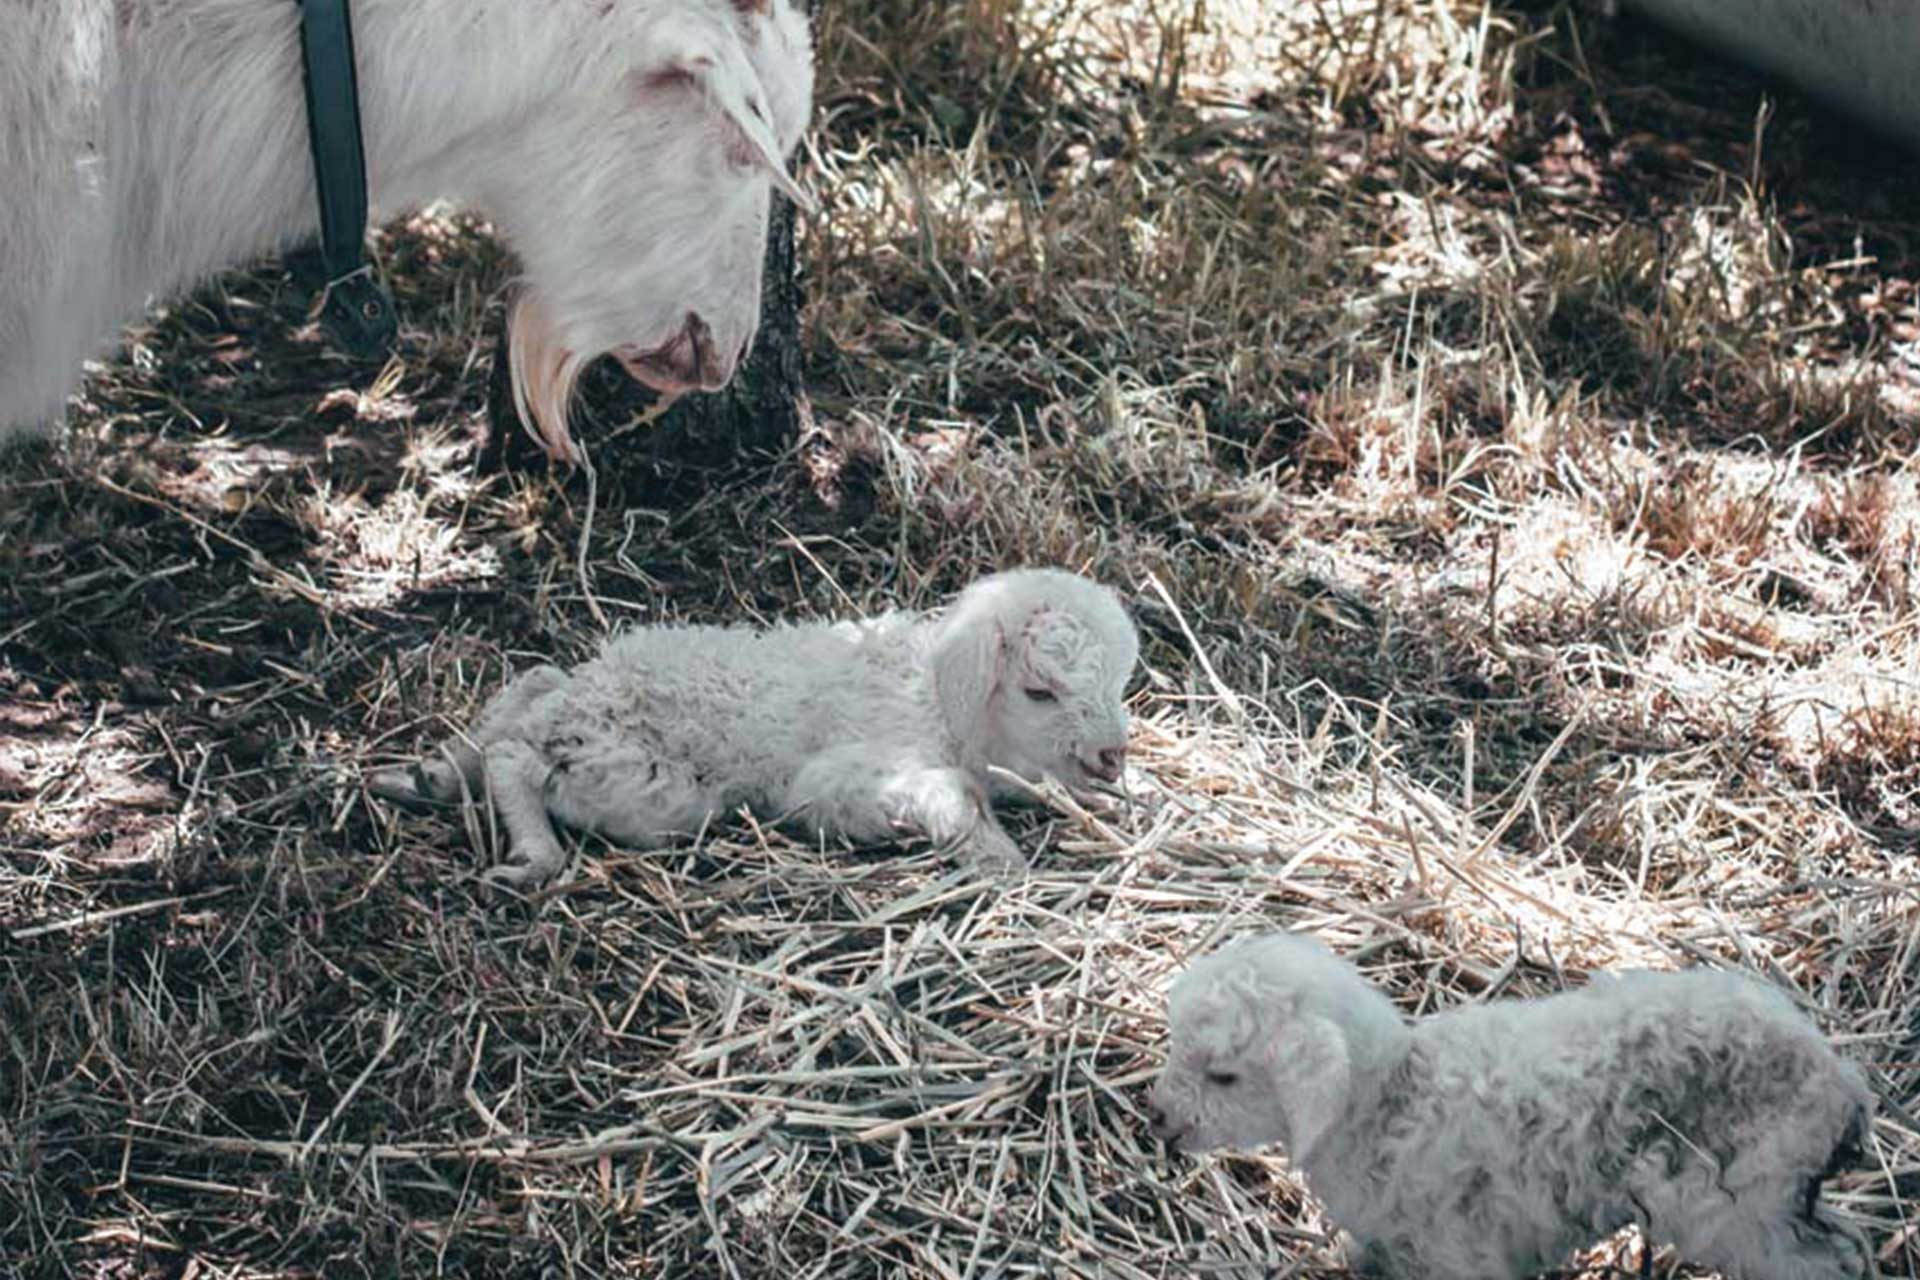 Mother Goat And Her Two Kids